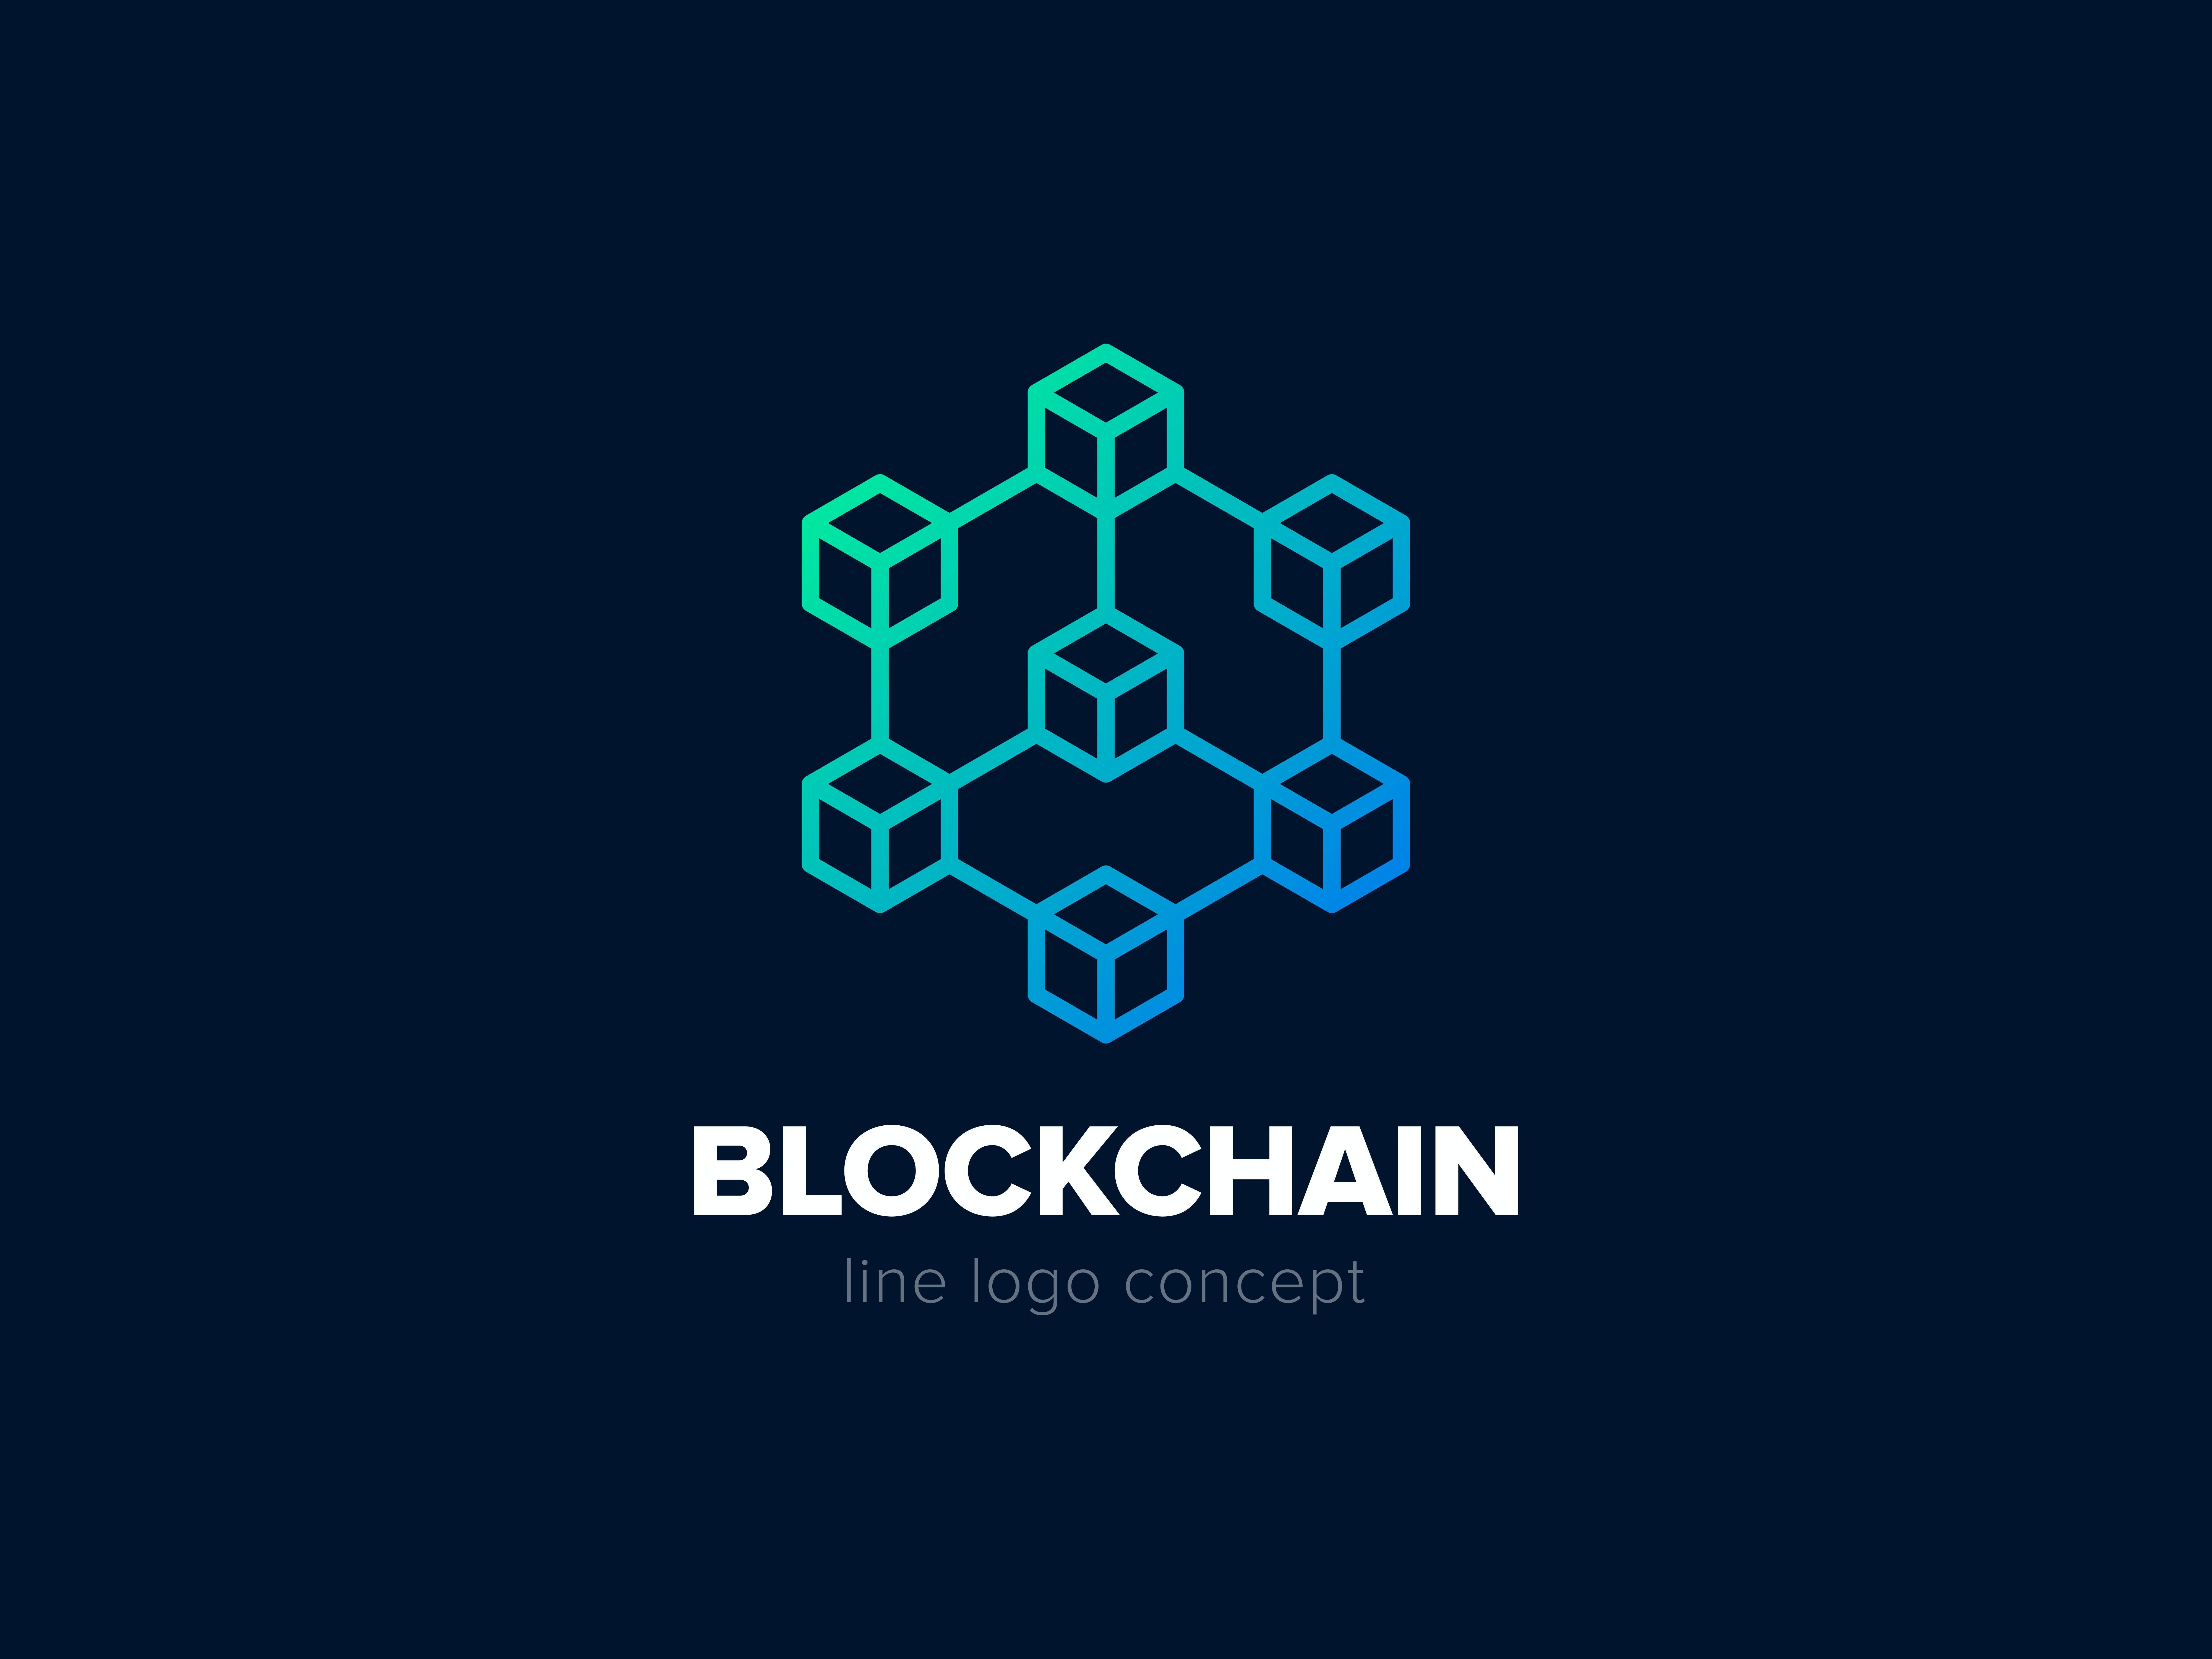 Blockchain Development Training in Chapel Hill, NC with no programming knowledge - ethereum blockchain developer training for beginners with no programming background, how to develop, build your own, diy ethereum blockchain application, smart contract